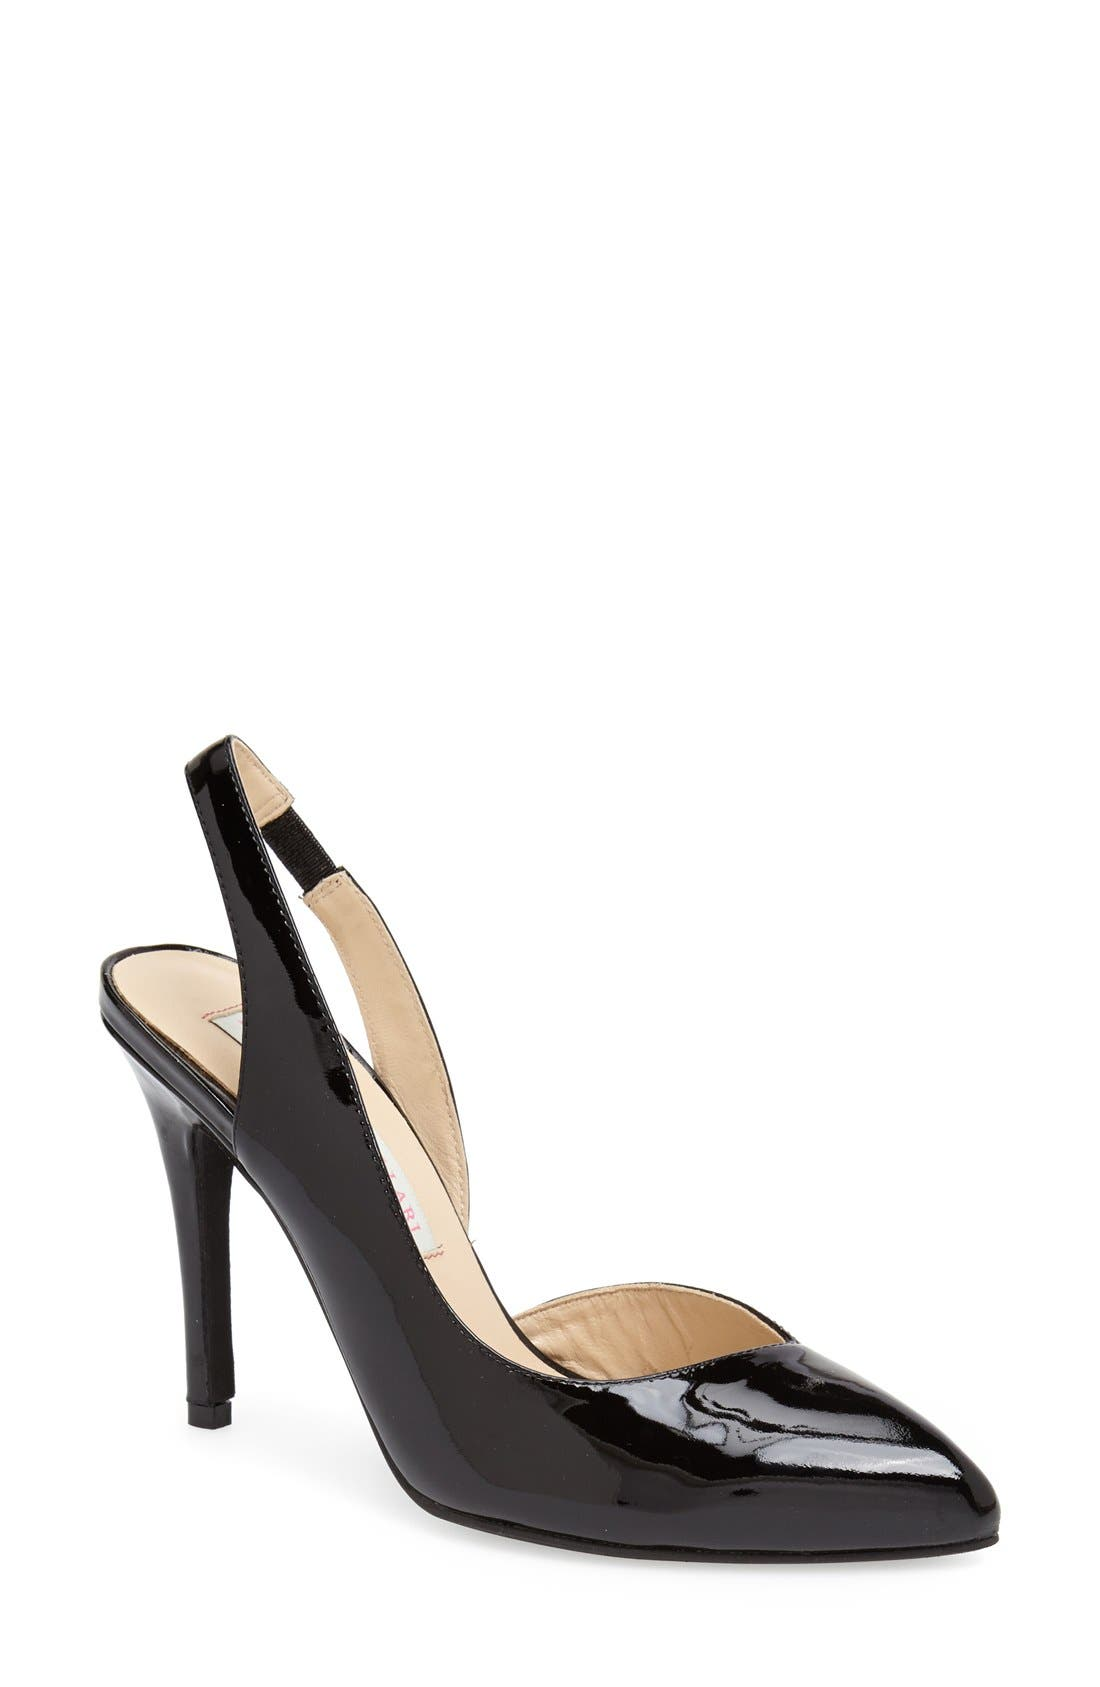 Alternate Image 1 Selected - Kristin Cavallari 'Cambrie' Pump (Women)